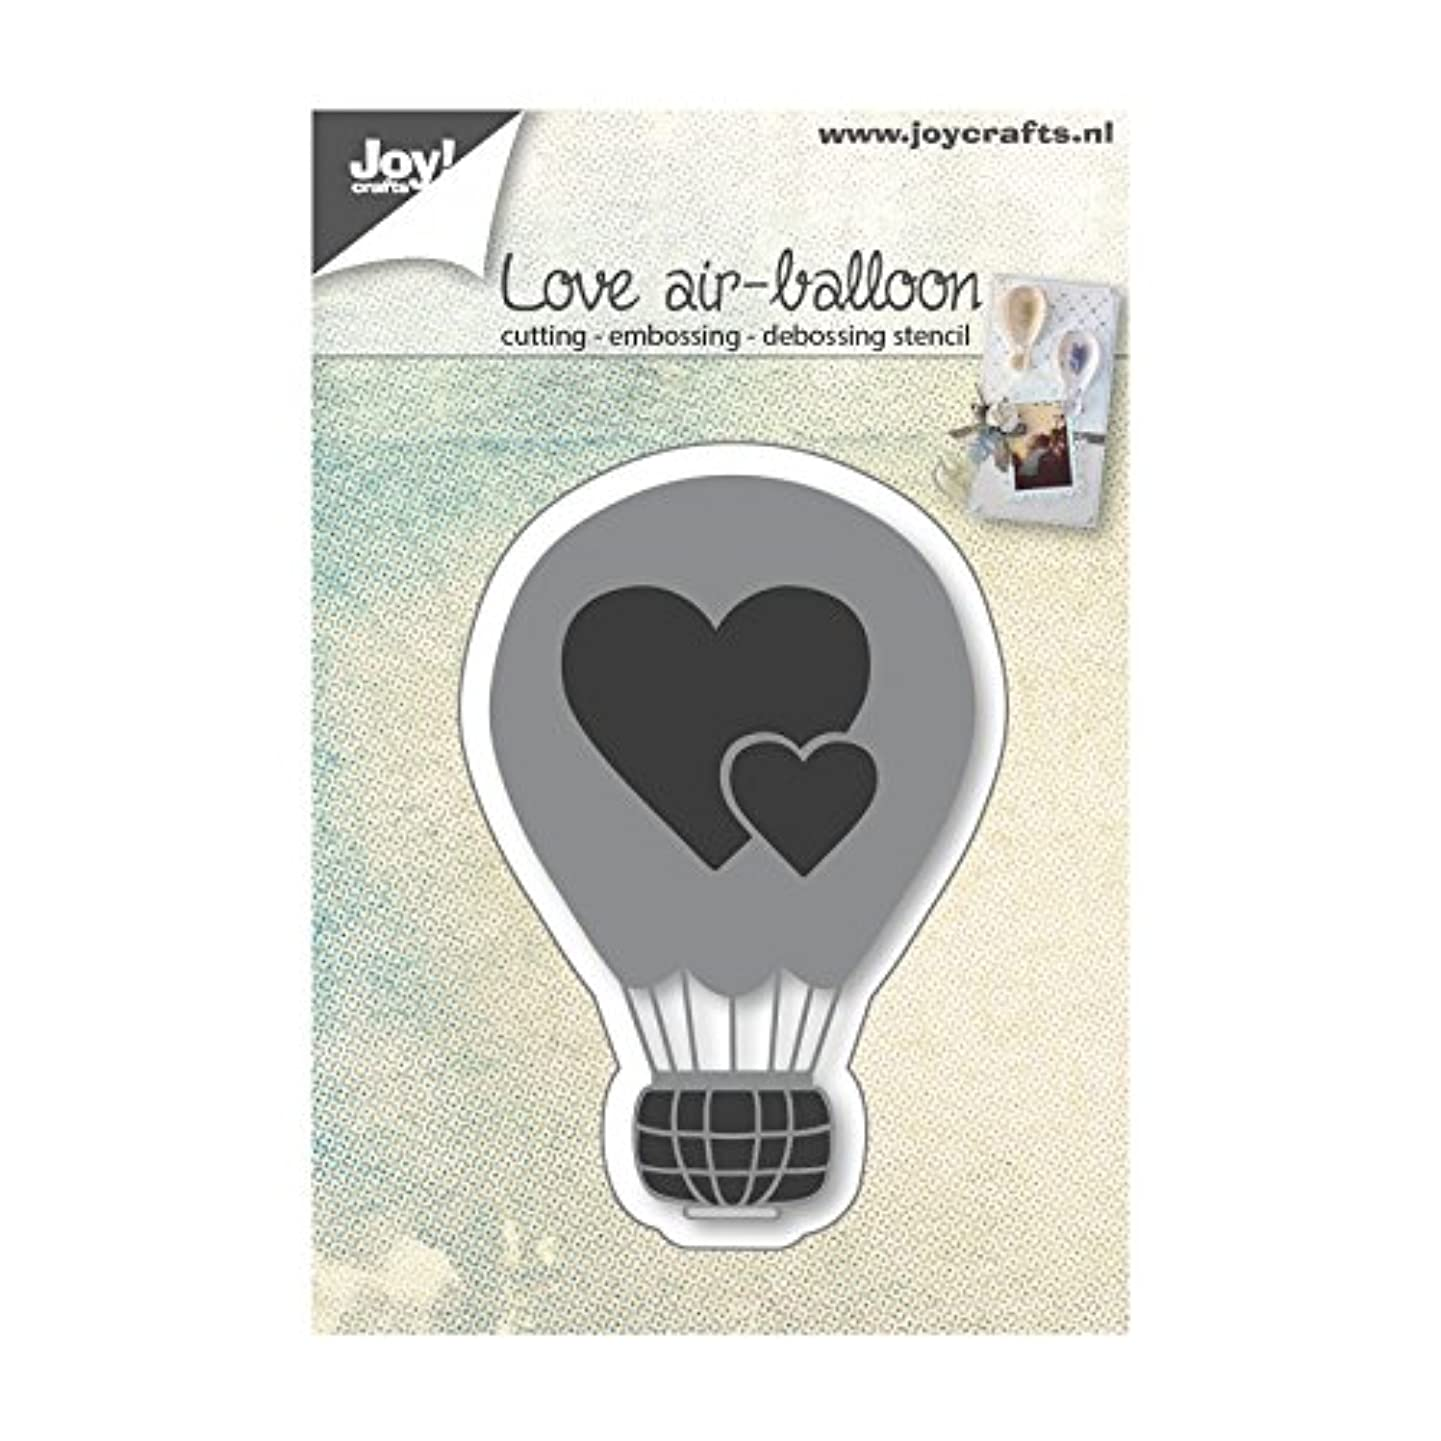 Joy Crafts -Cut & Emboss/Deboss Die - Love Air Balloon